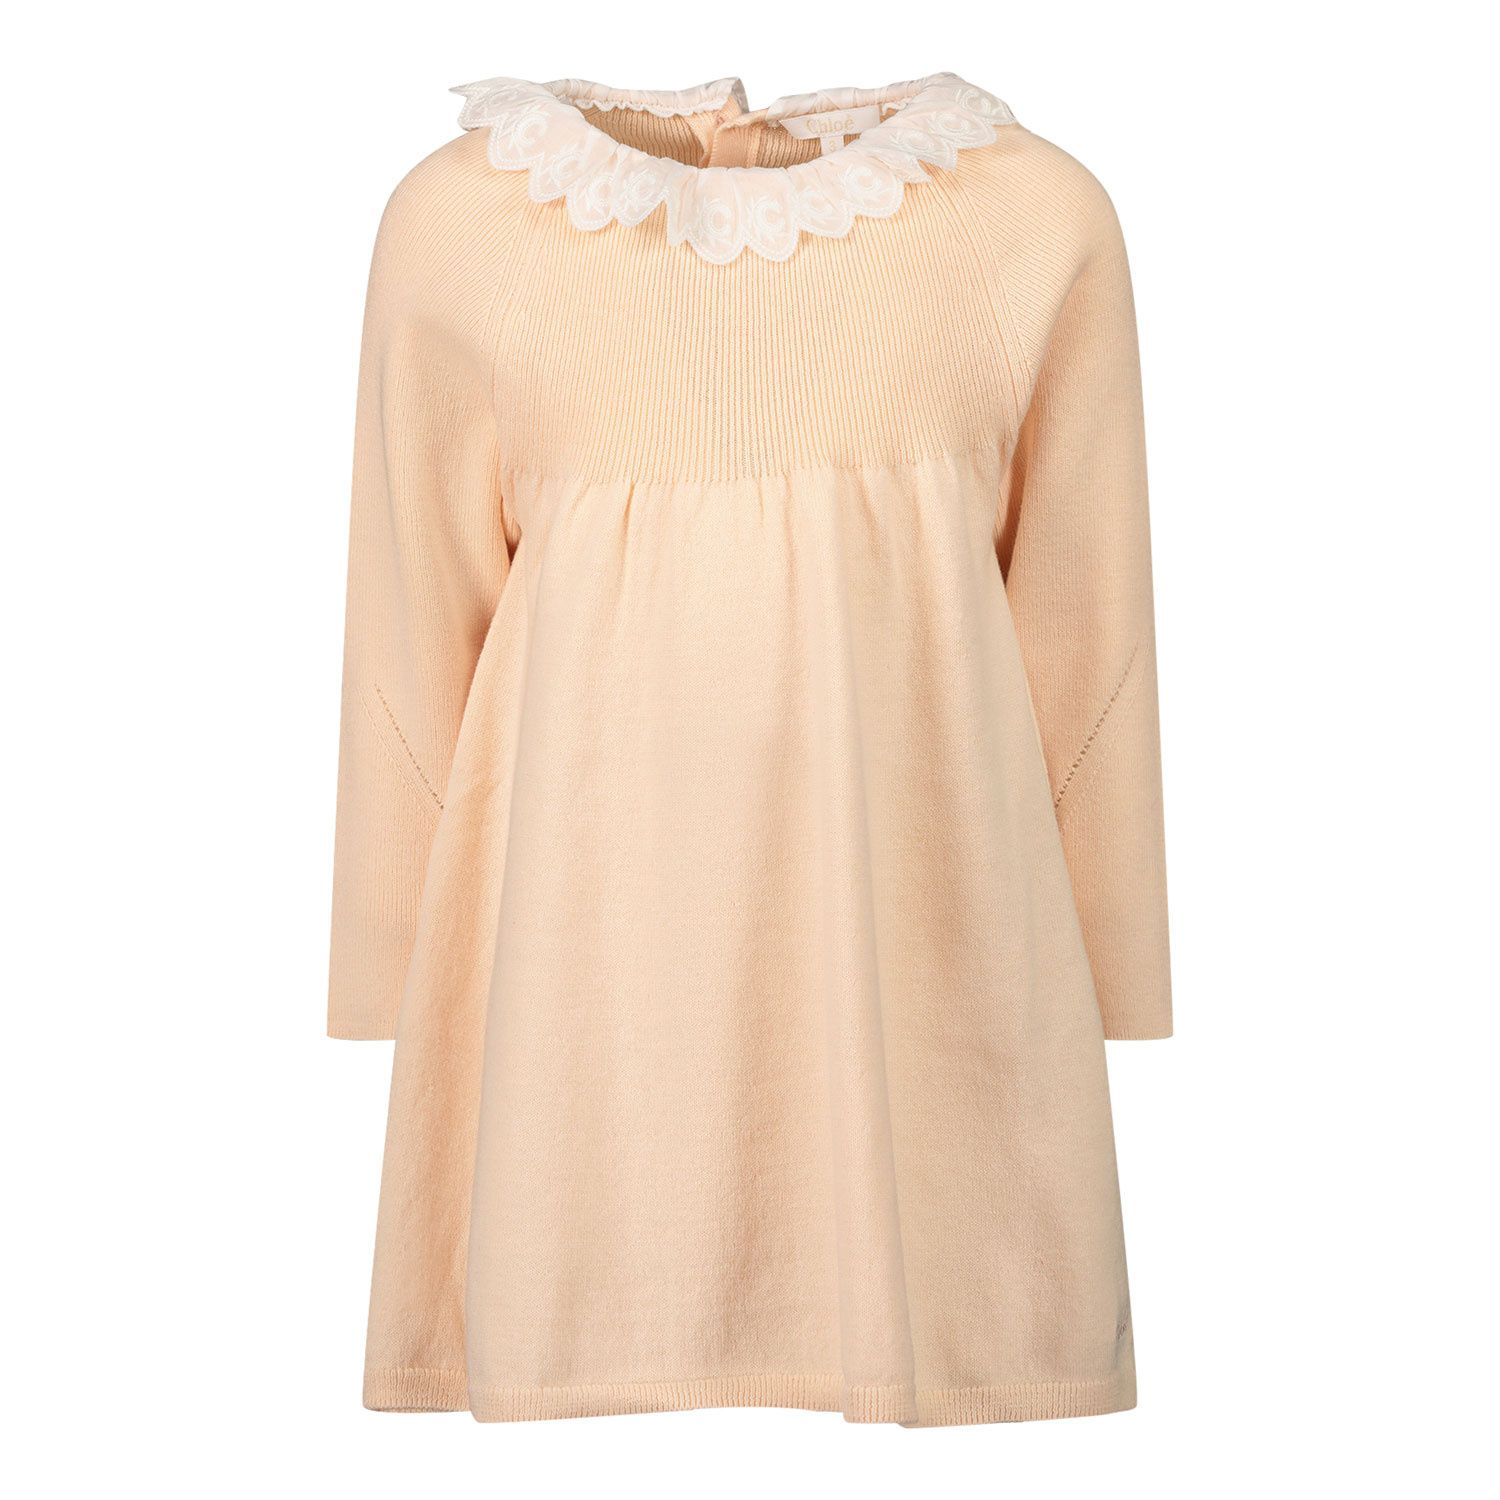 Picture of Chloé C00274 baby dress light pink